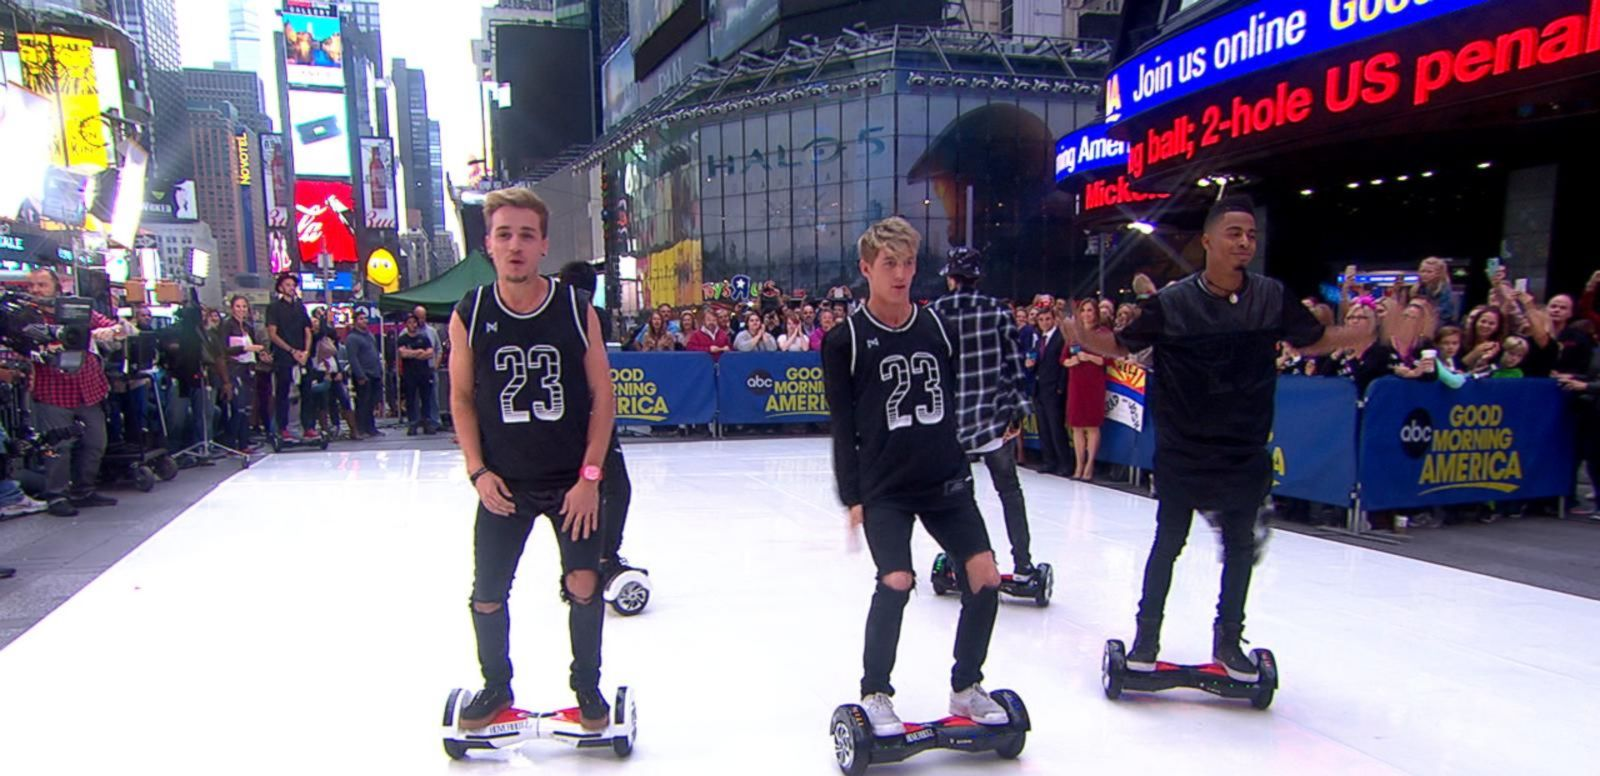 VIDEO: 'Bot Bros' Incredible Live Hoverboard Performance